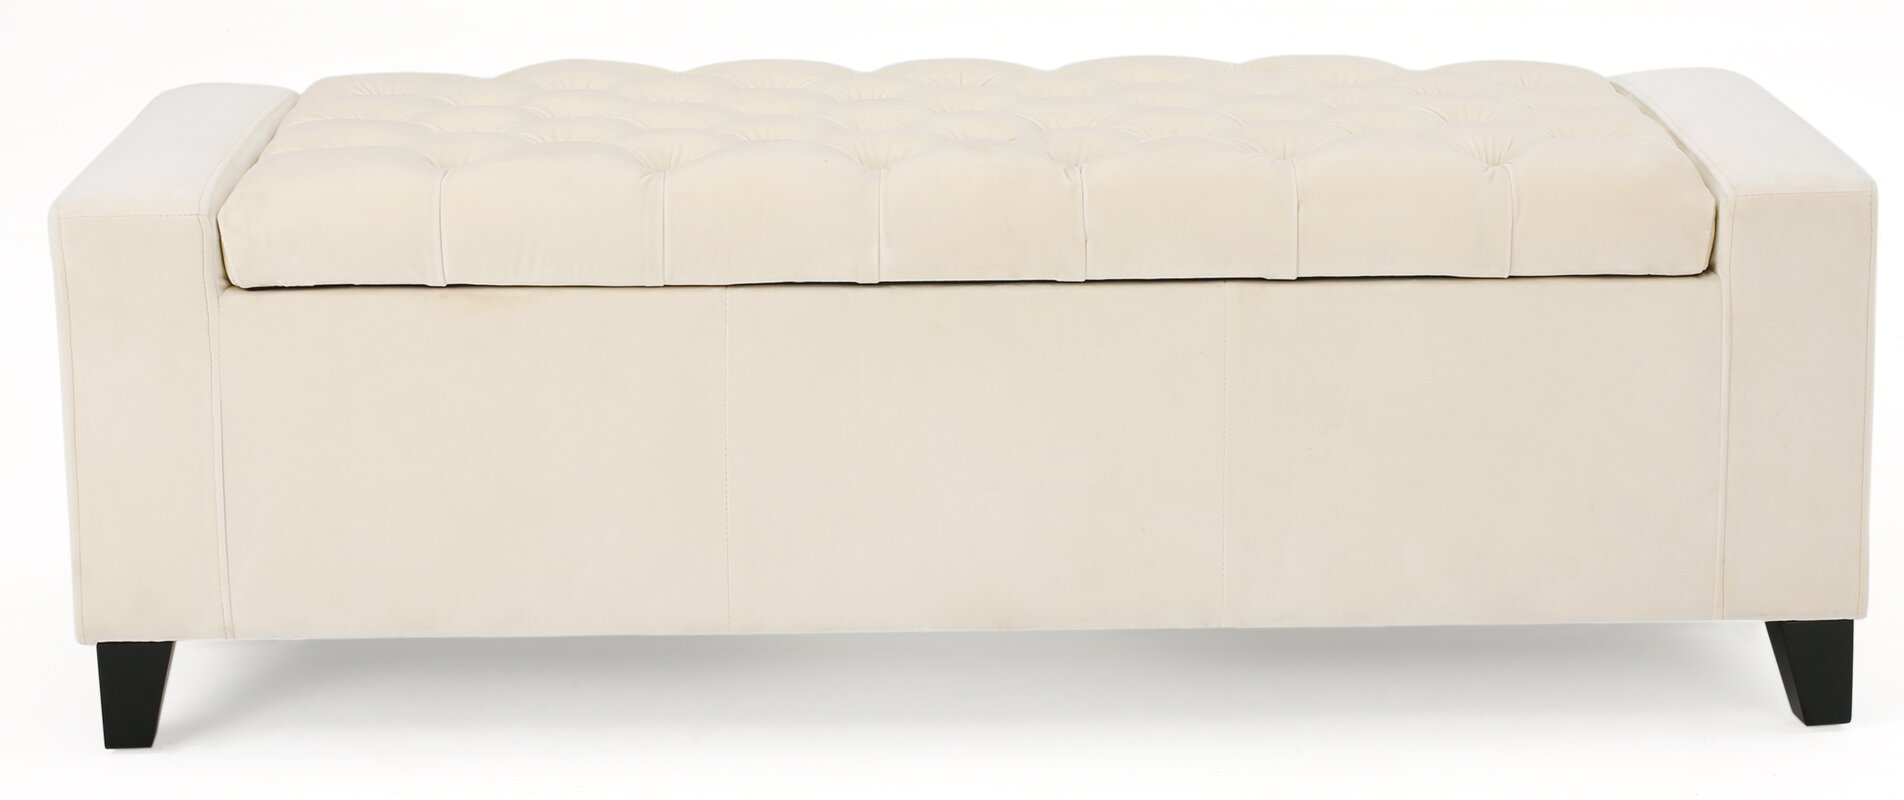 Awesome Ilchester Upholstered Storage Bench